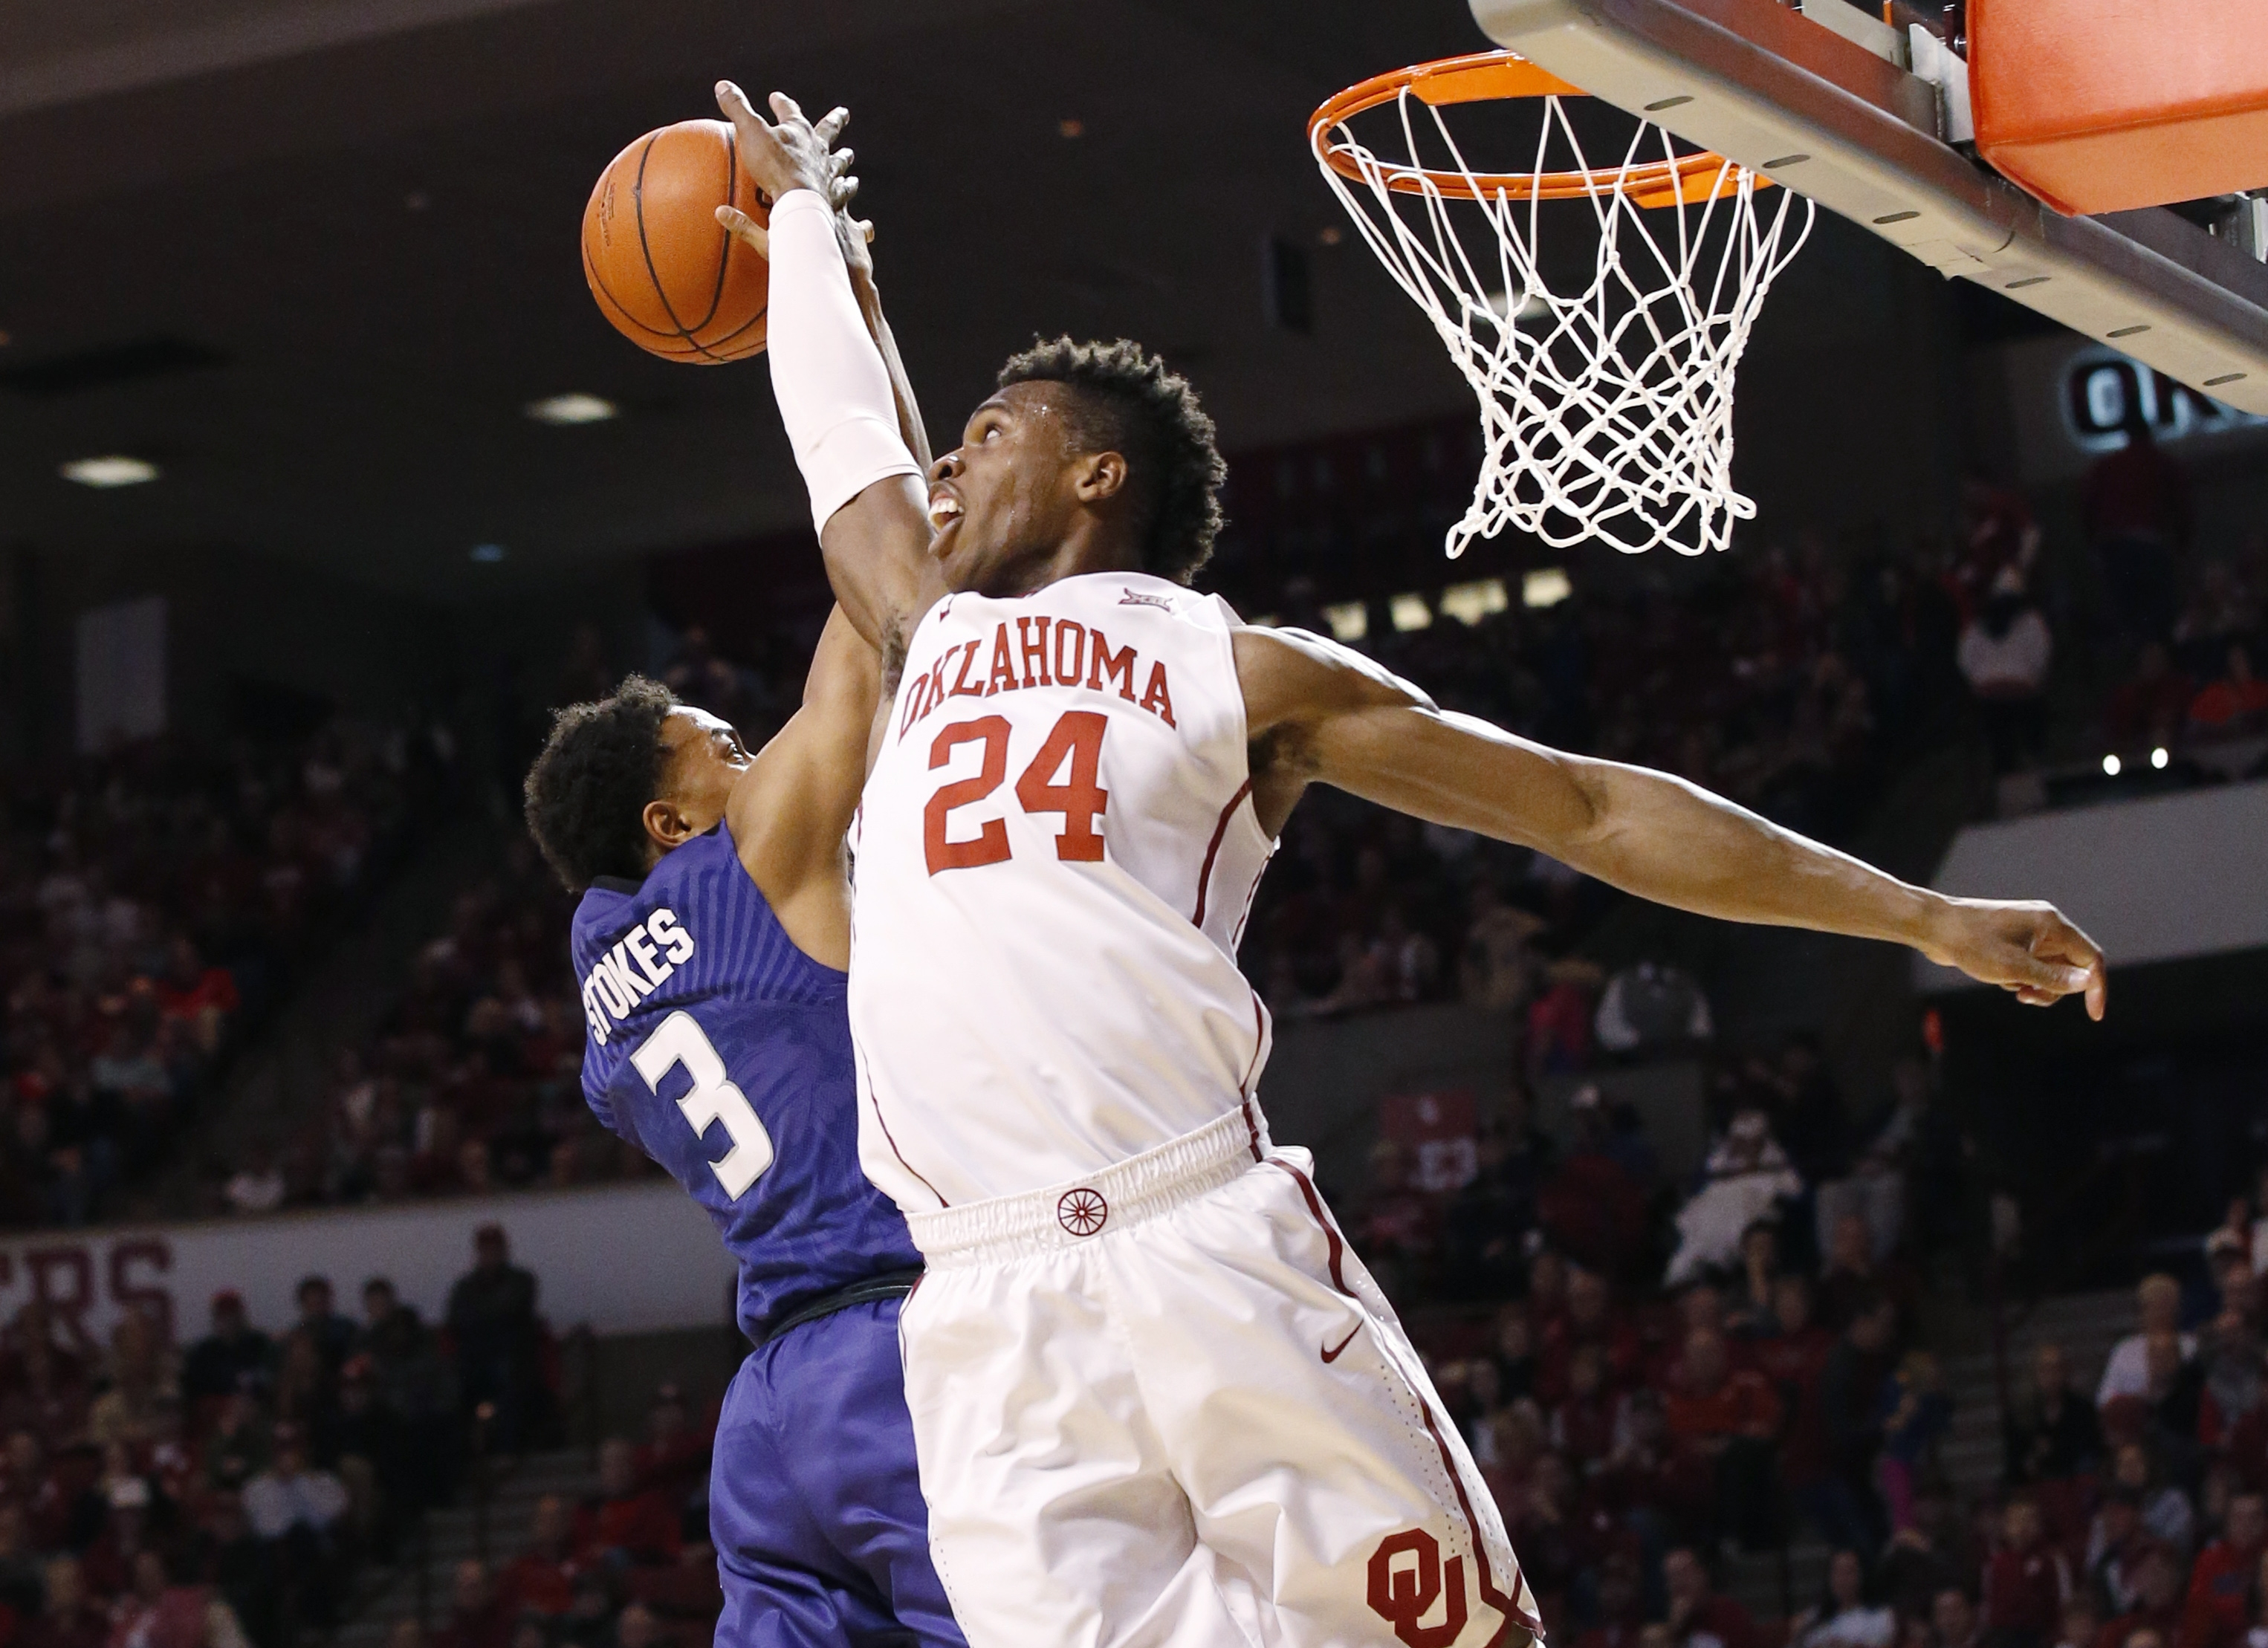 FILE - In this Jan. 9, 2016, file photo, Oklahoma guard Buddy Hield (24) blocks a shot by Kansas State guard Kamau Stokes (3) in the first half of an NCAA college basketball game in Norman, Okla. The college basketball season is already 2 months old and l